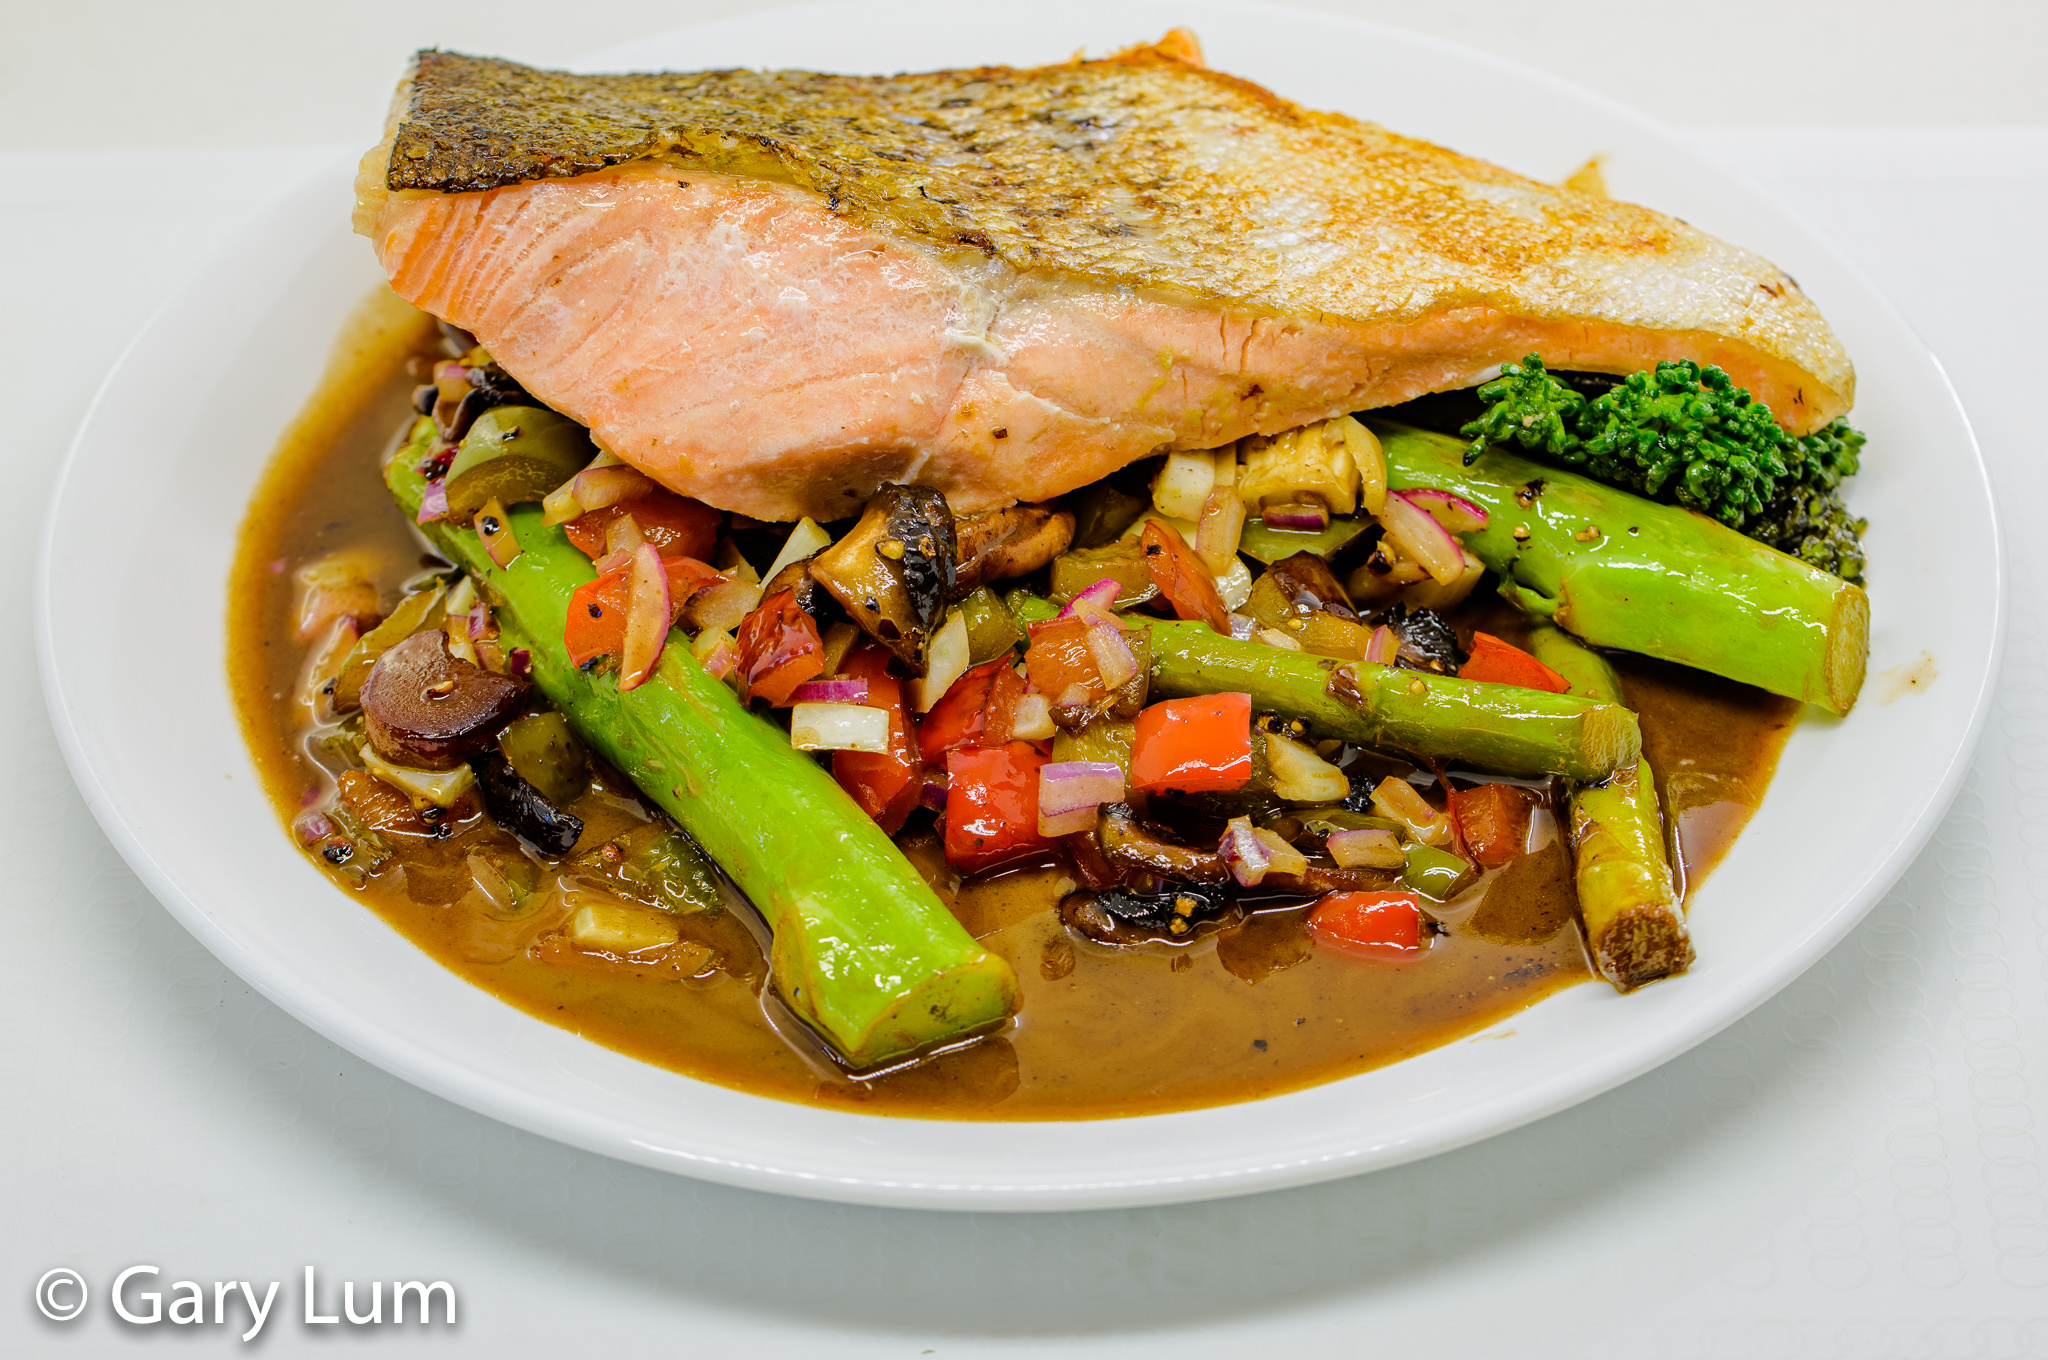 Pan-fried salmon with broccolini, asparagus, capsicum, red onion, fennel, and leftover gravy. Gary Lum.